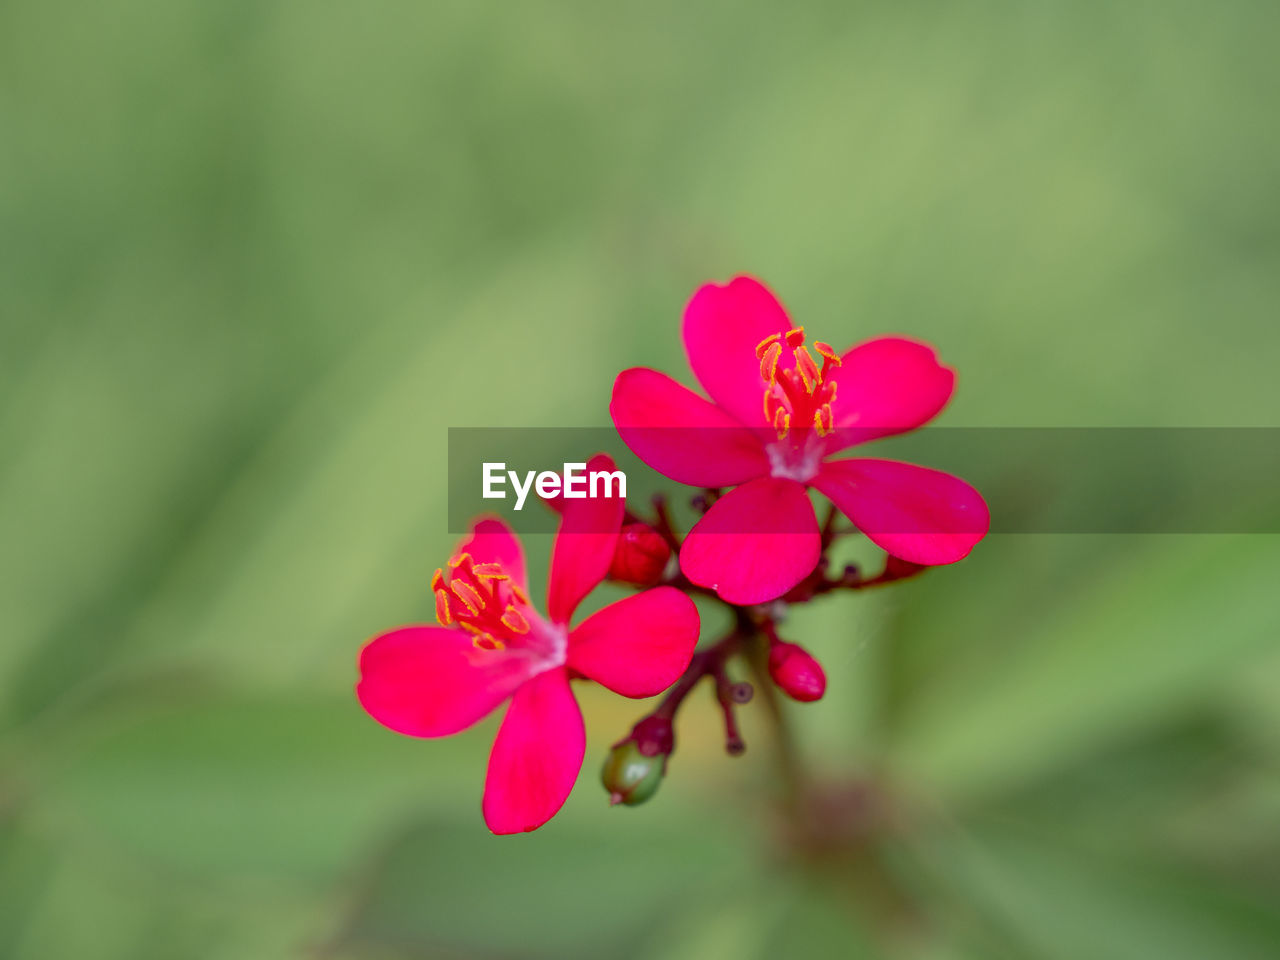 flowering plant, flower, plant, beauty in nature, vulnerability, fragility, close-up, petal, growth, freshness, pink color, flower head, inflorescence, no people, day, nature, focus on foreground, selective focus, outdoors, botany